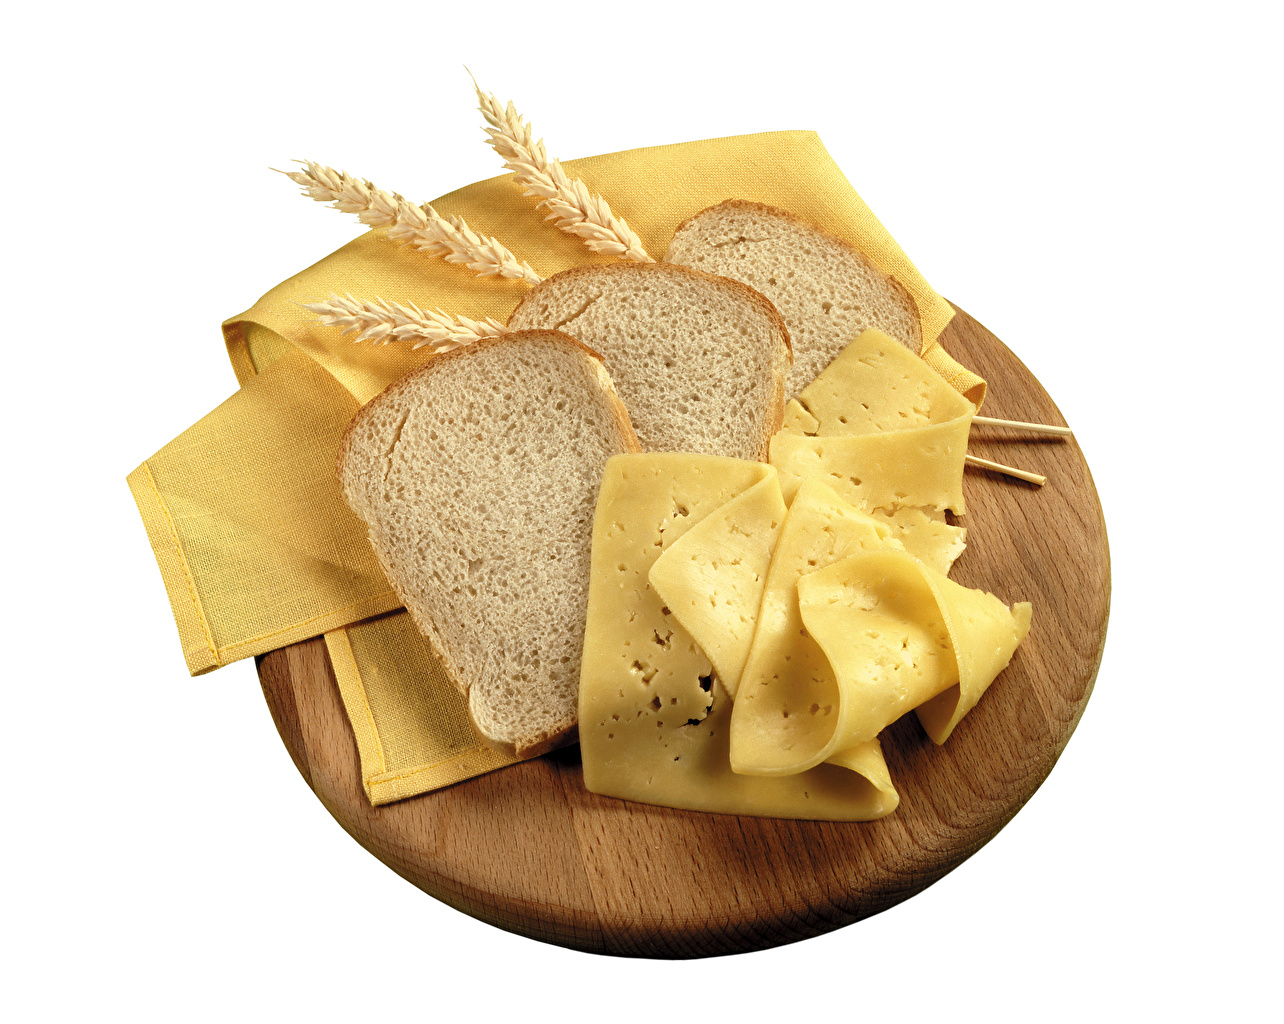 Wallpapers Bread Cheese Ear botany Food White background